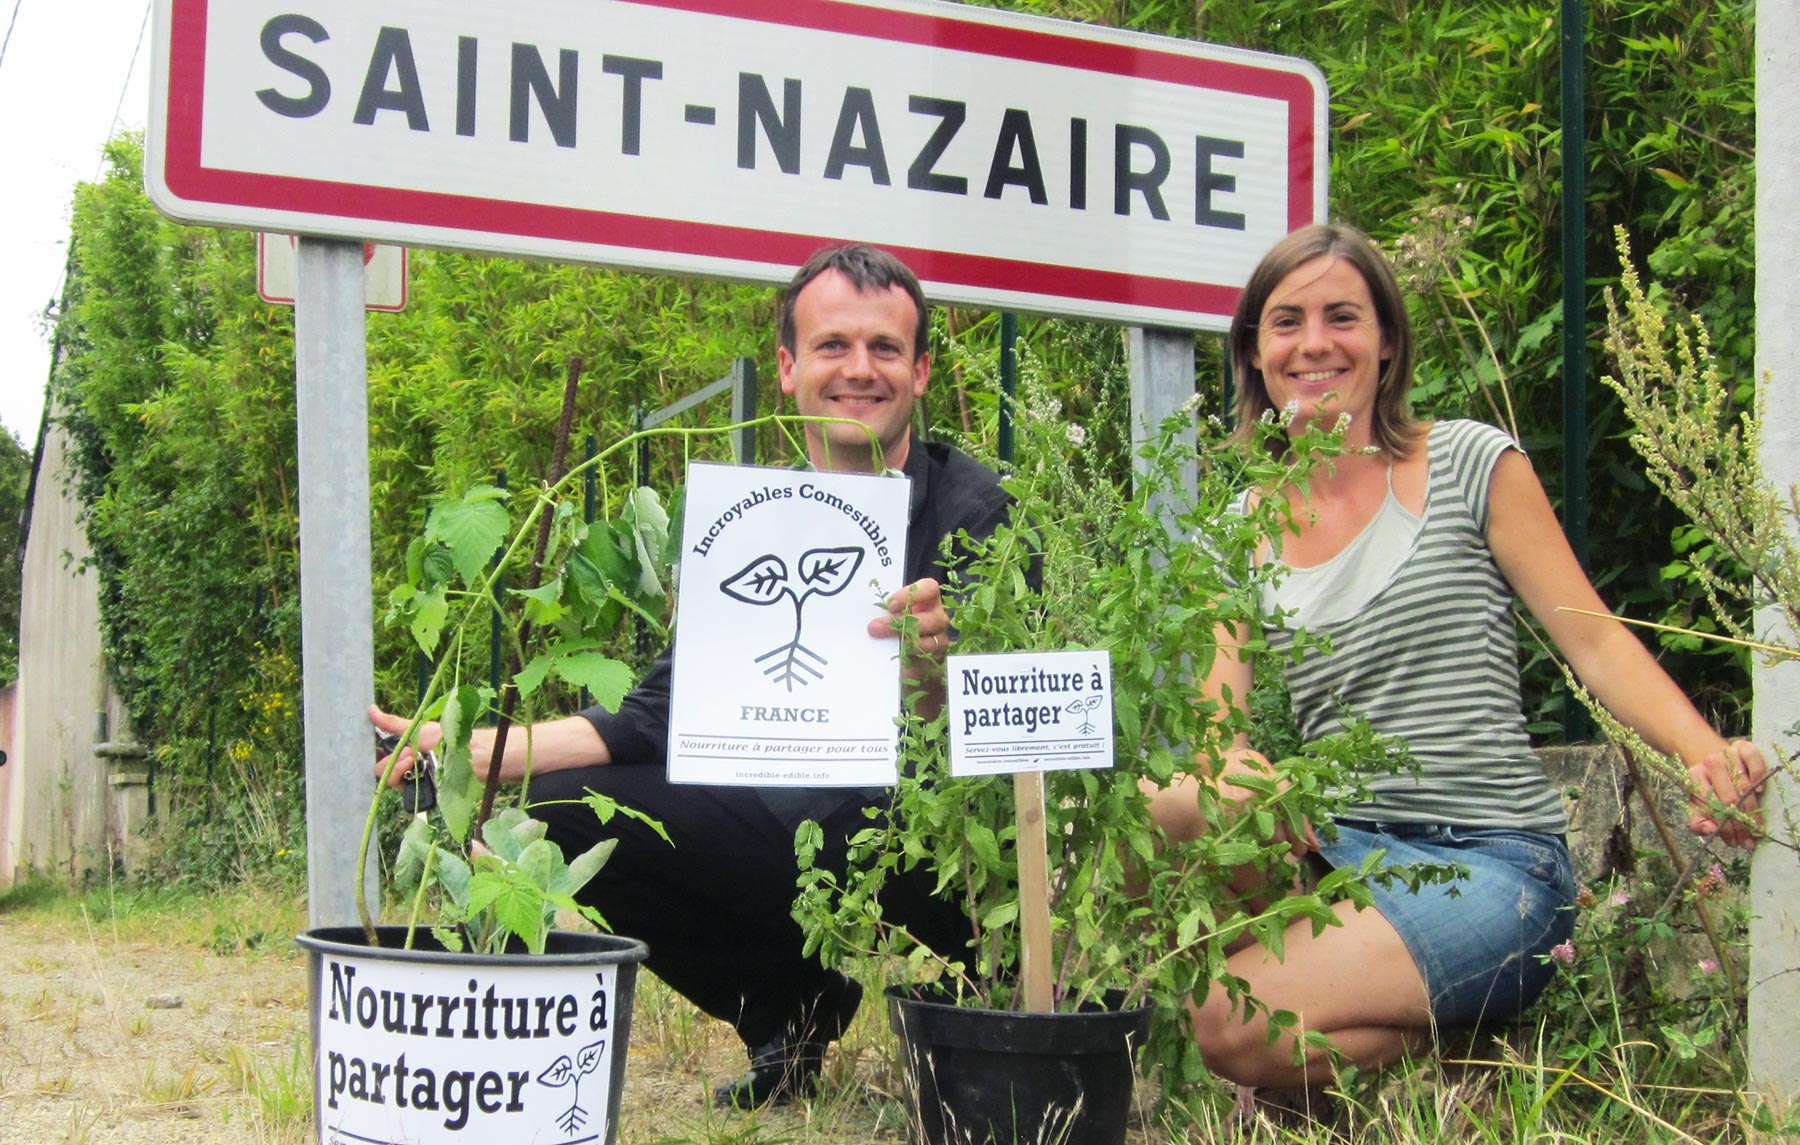 c744_incredible_edible_todmorden_incroyables_comestibles_france_saint-nazaire_w1800